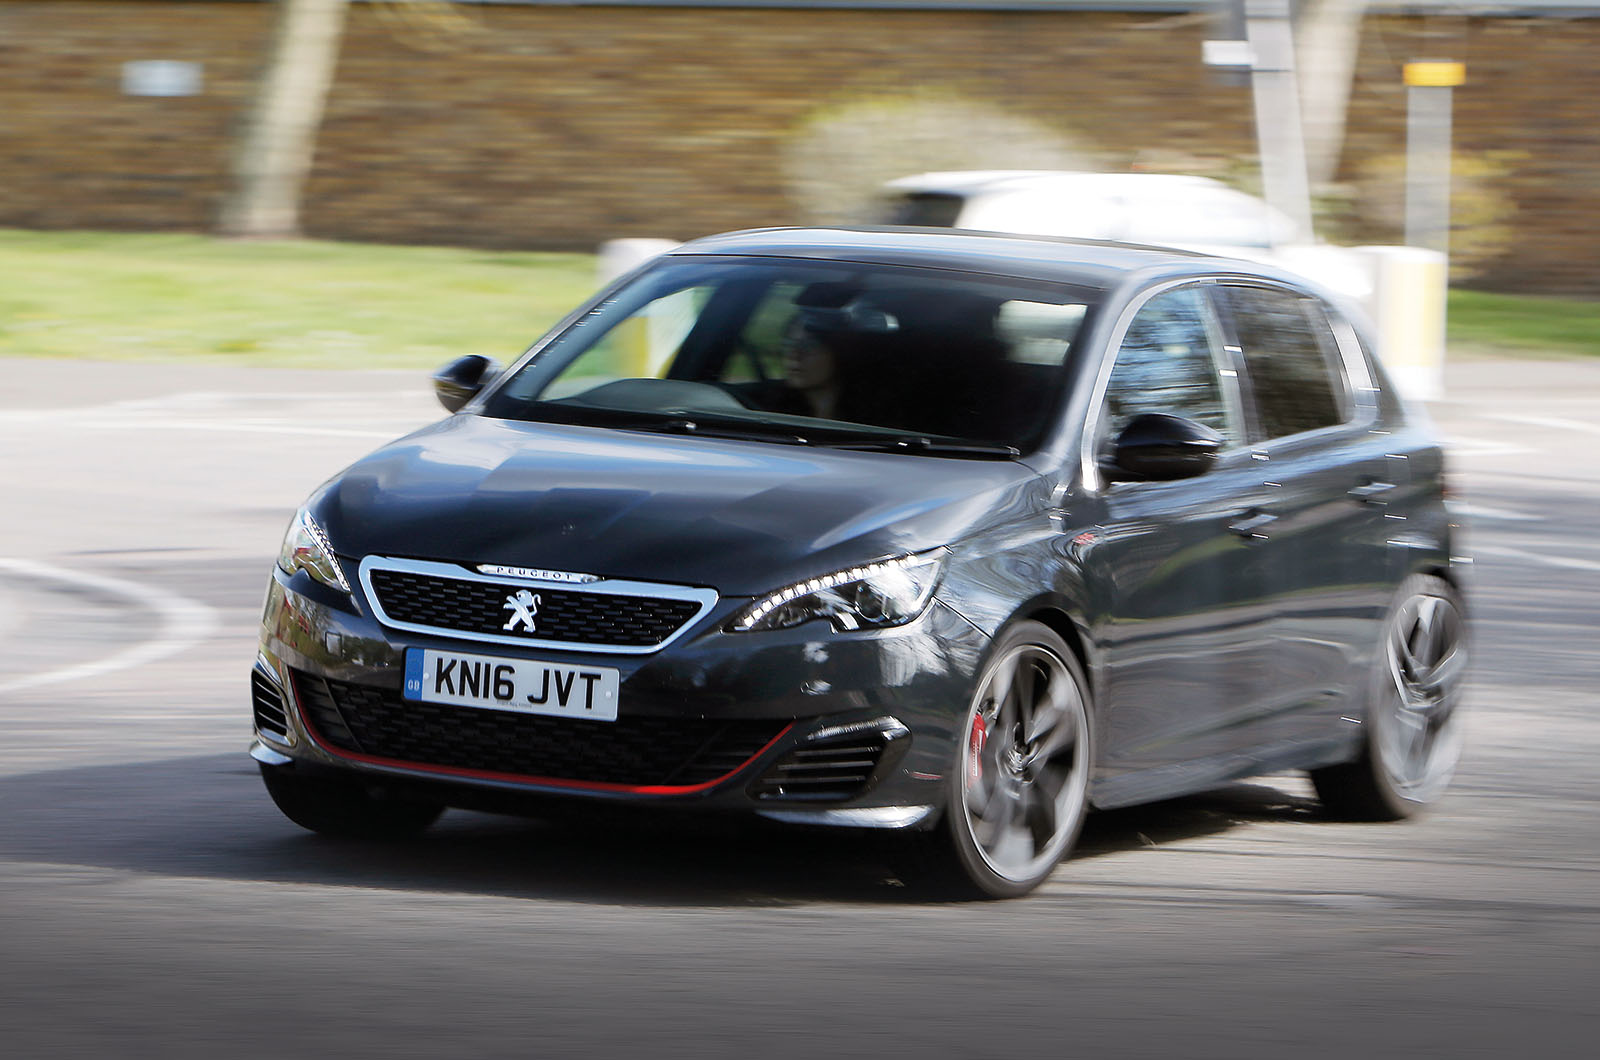 Peugeot 308 GTi long-term check review: flexible hot hatch